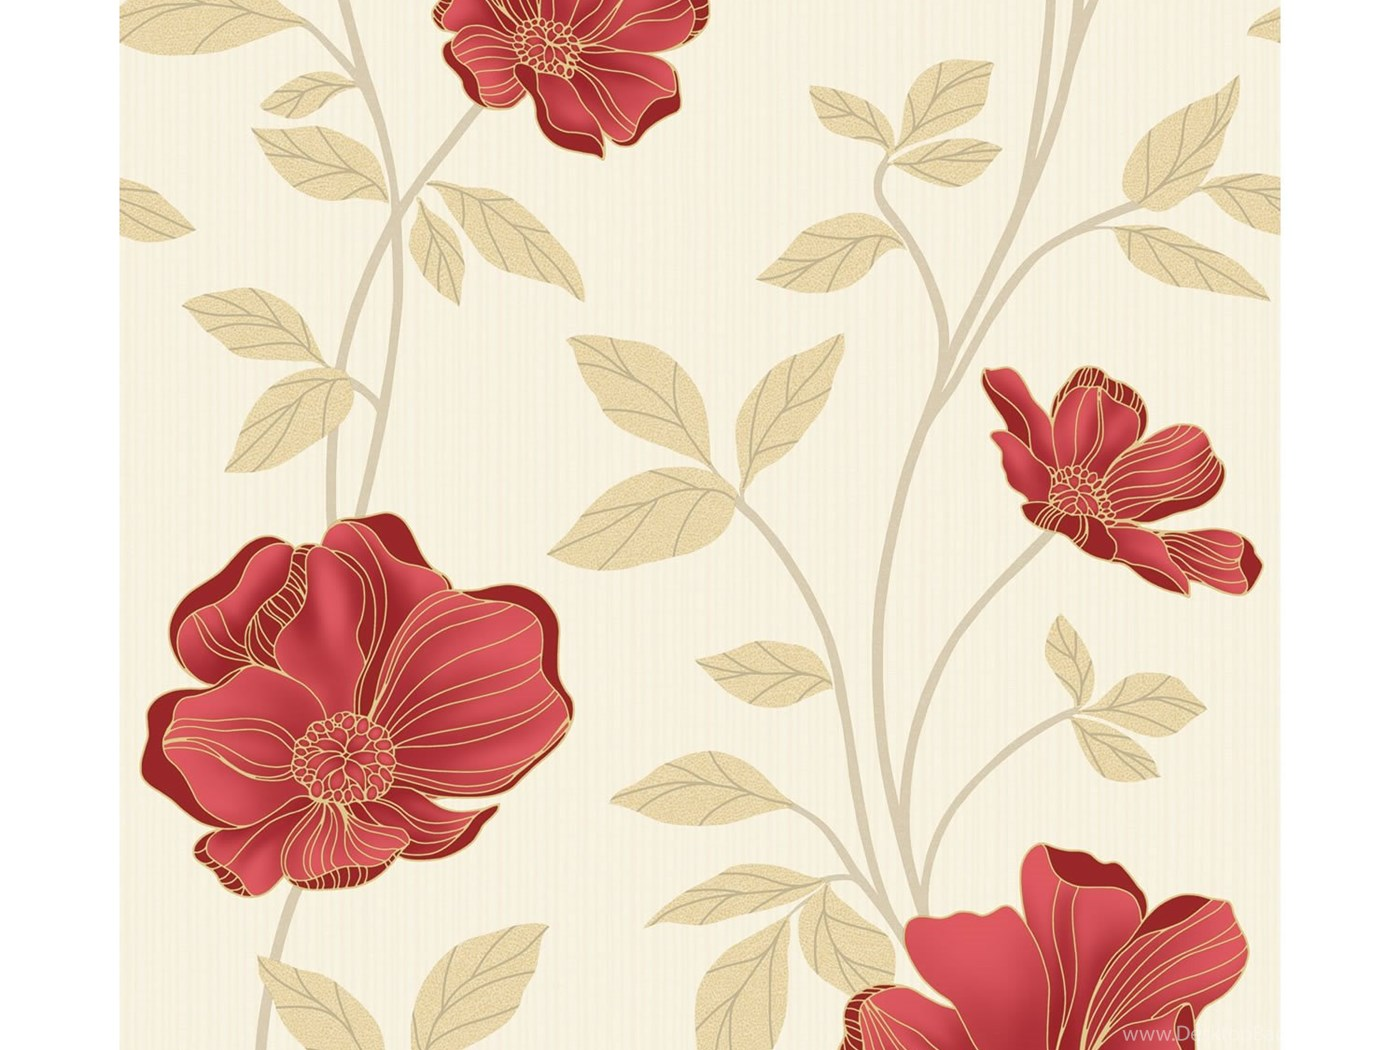 Floral Wallpapers Tumblr Quotes For Iphonr Pattern Vintage Hd